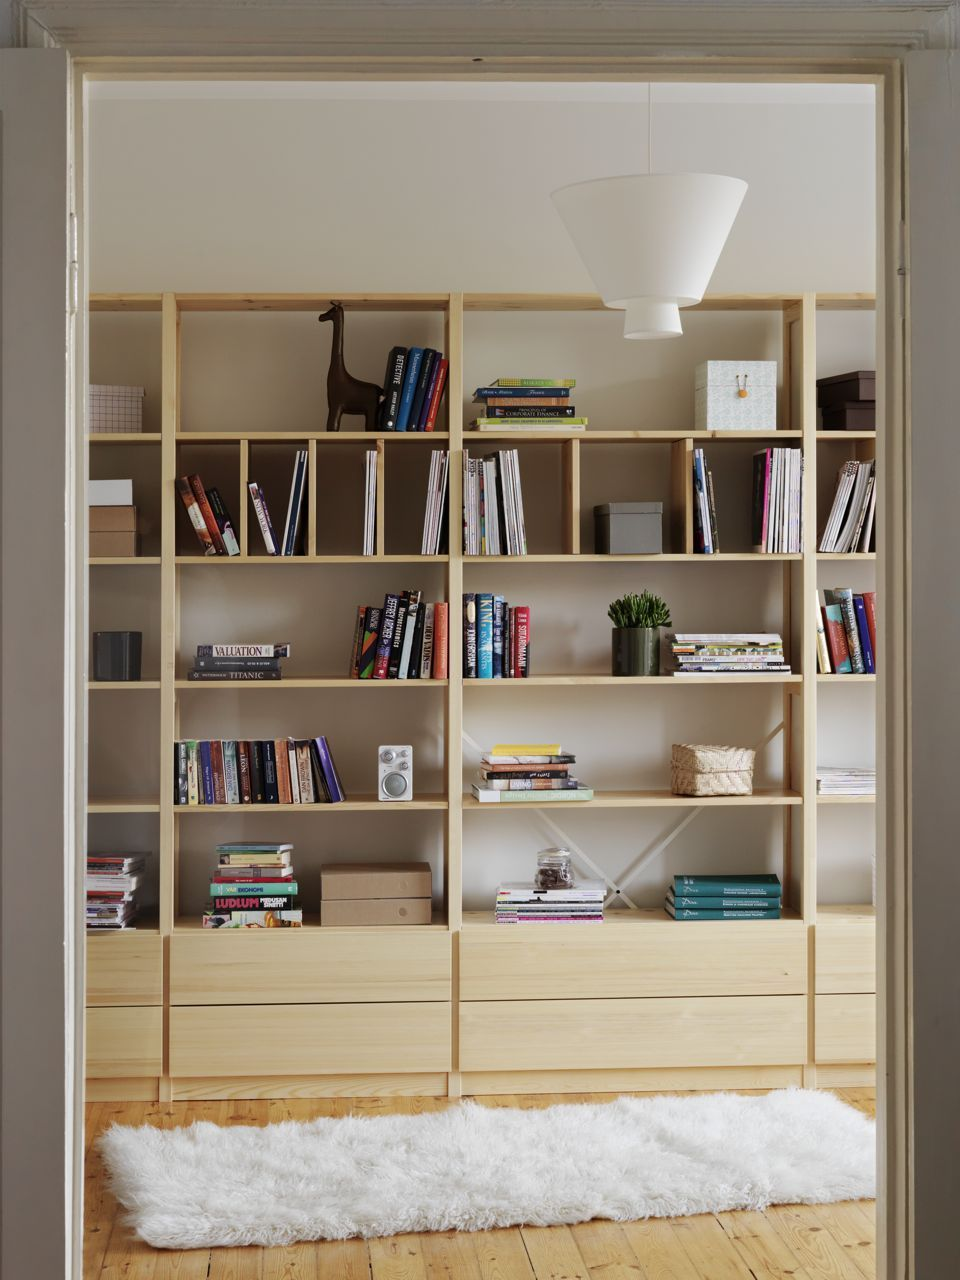 Lundia Regale Lundia Classic Organize It Shelving Shelves Bookshelves